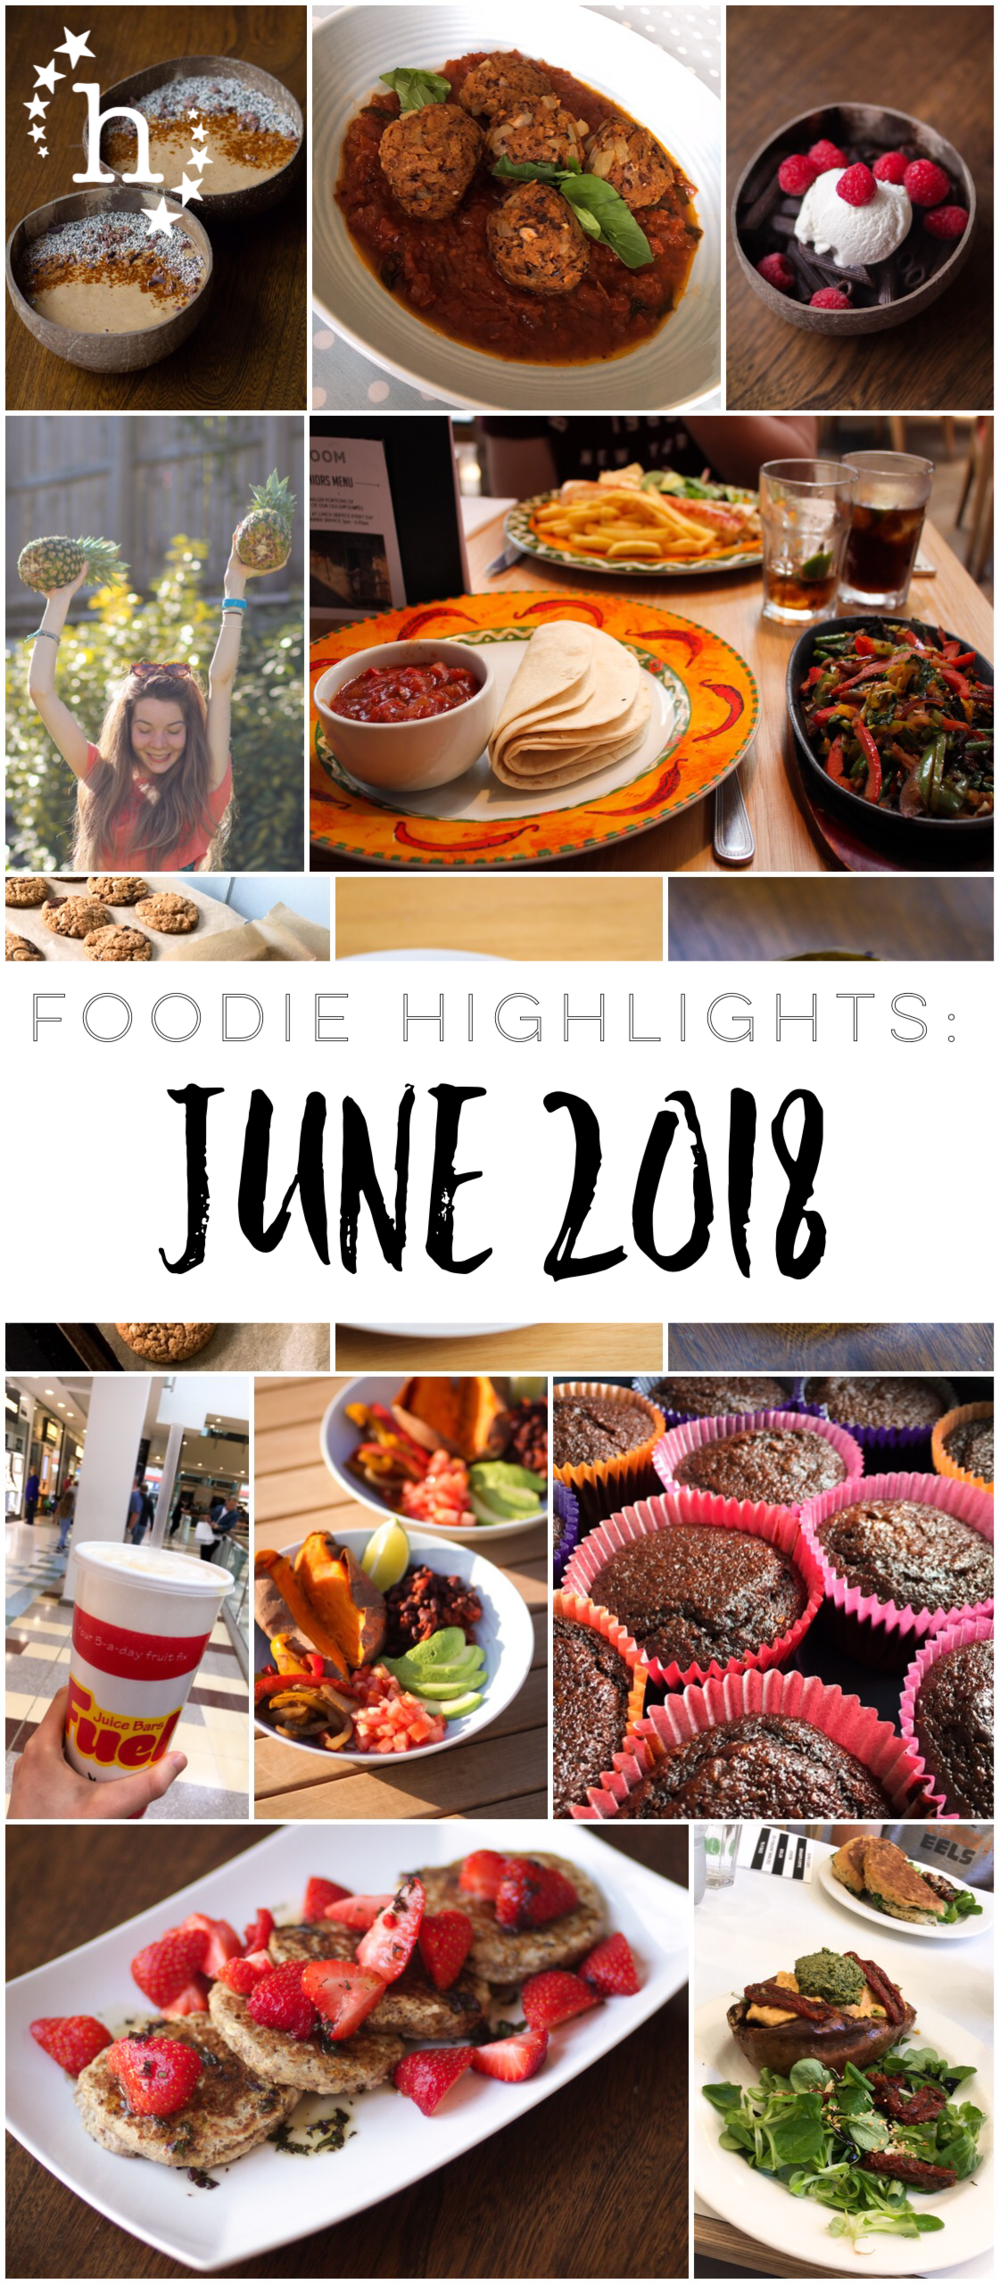 Foodie Highlights: June 2018